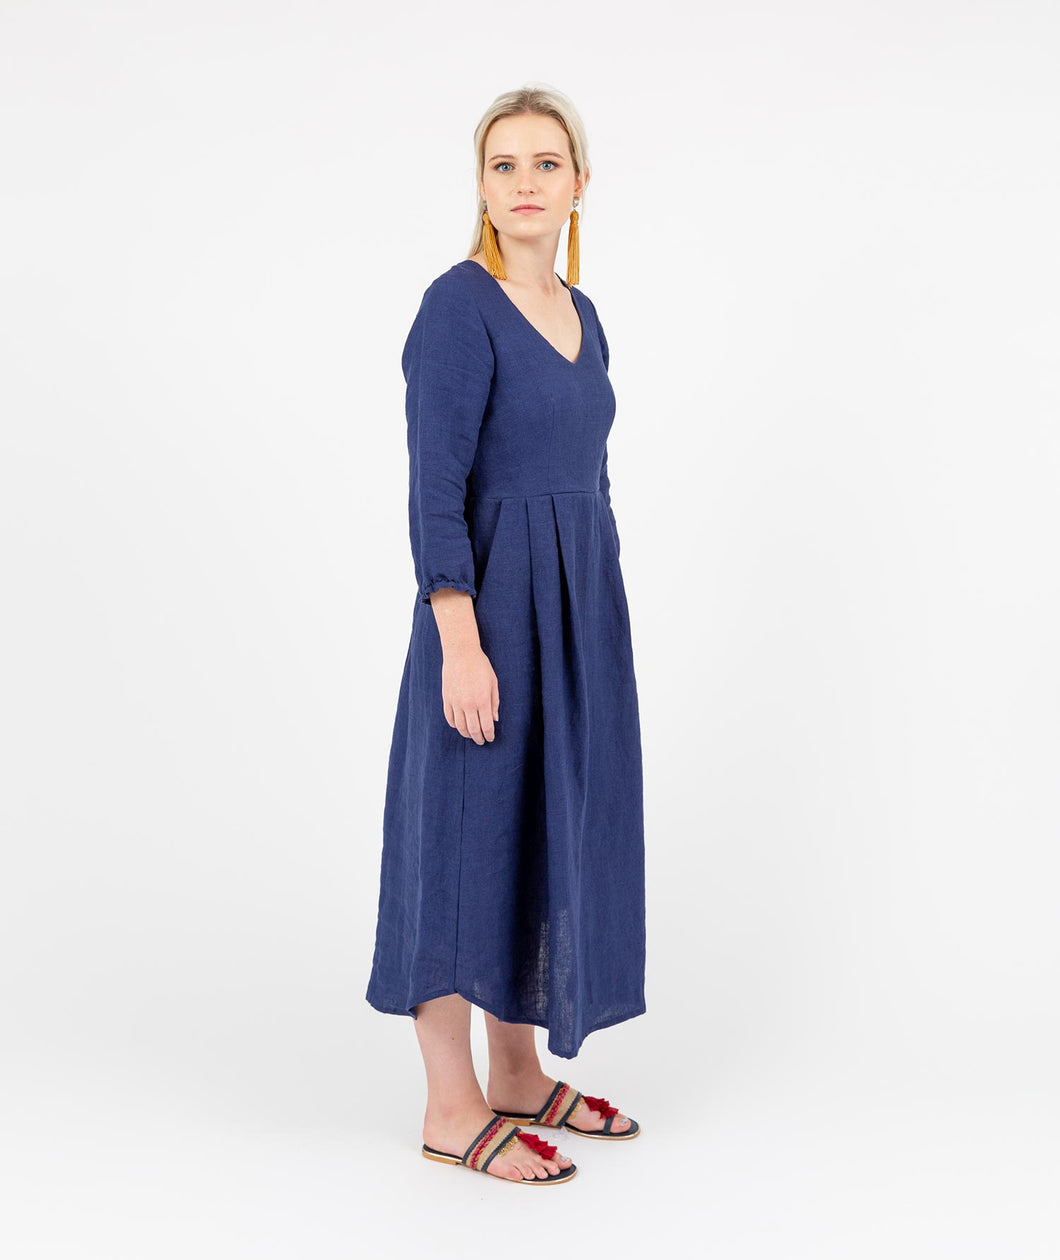 Holi Boli, Horizon Dress, Dress, ethical fashion